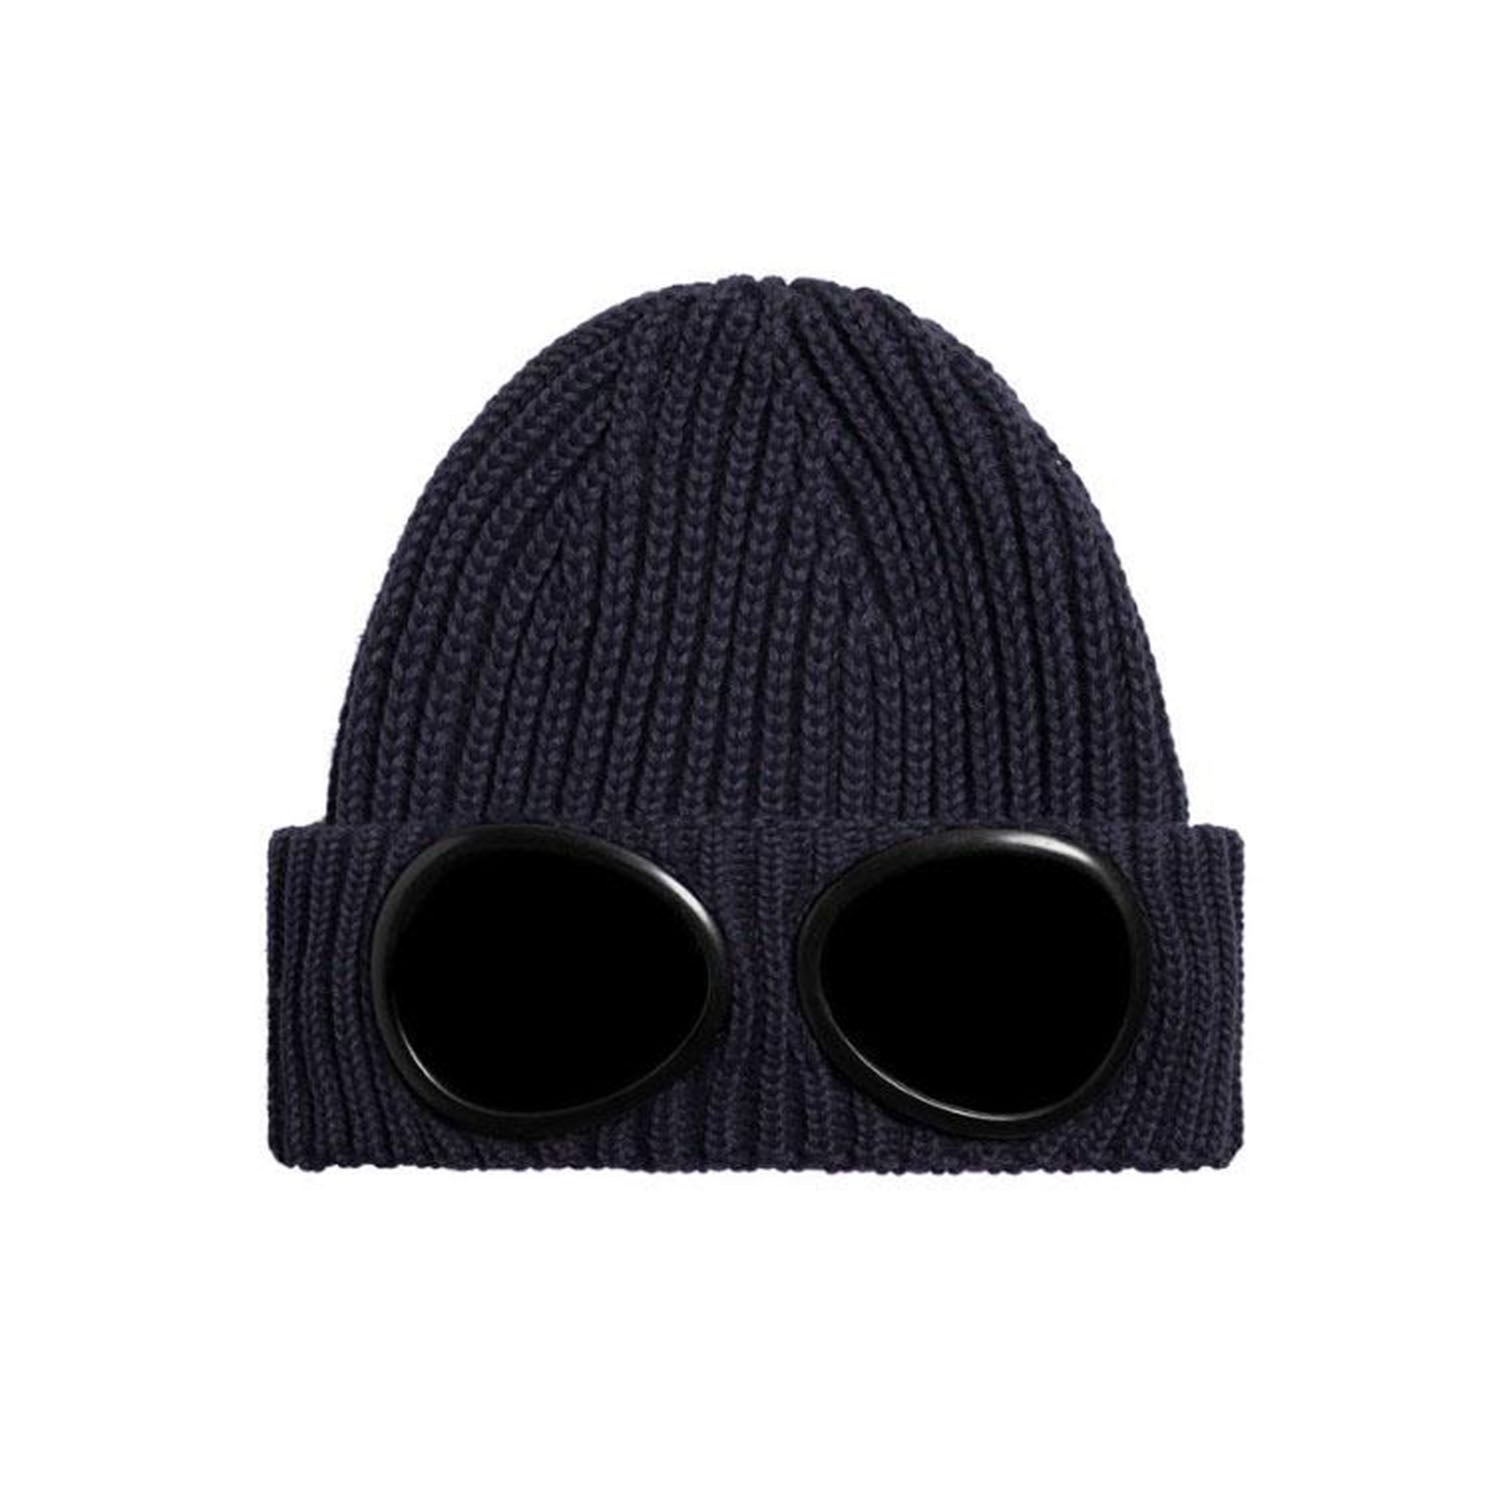 CP Company Extra Fine Merino Wool Knit Beanie Hat